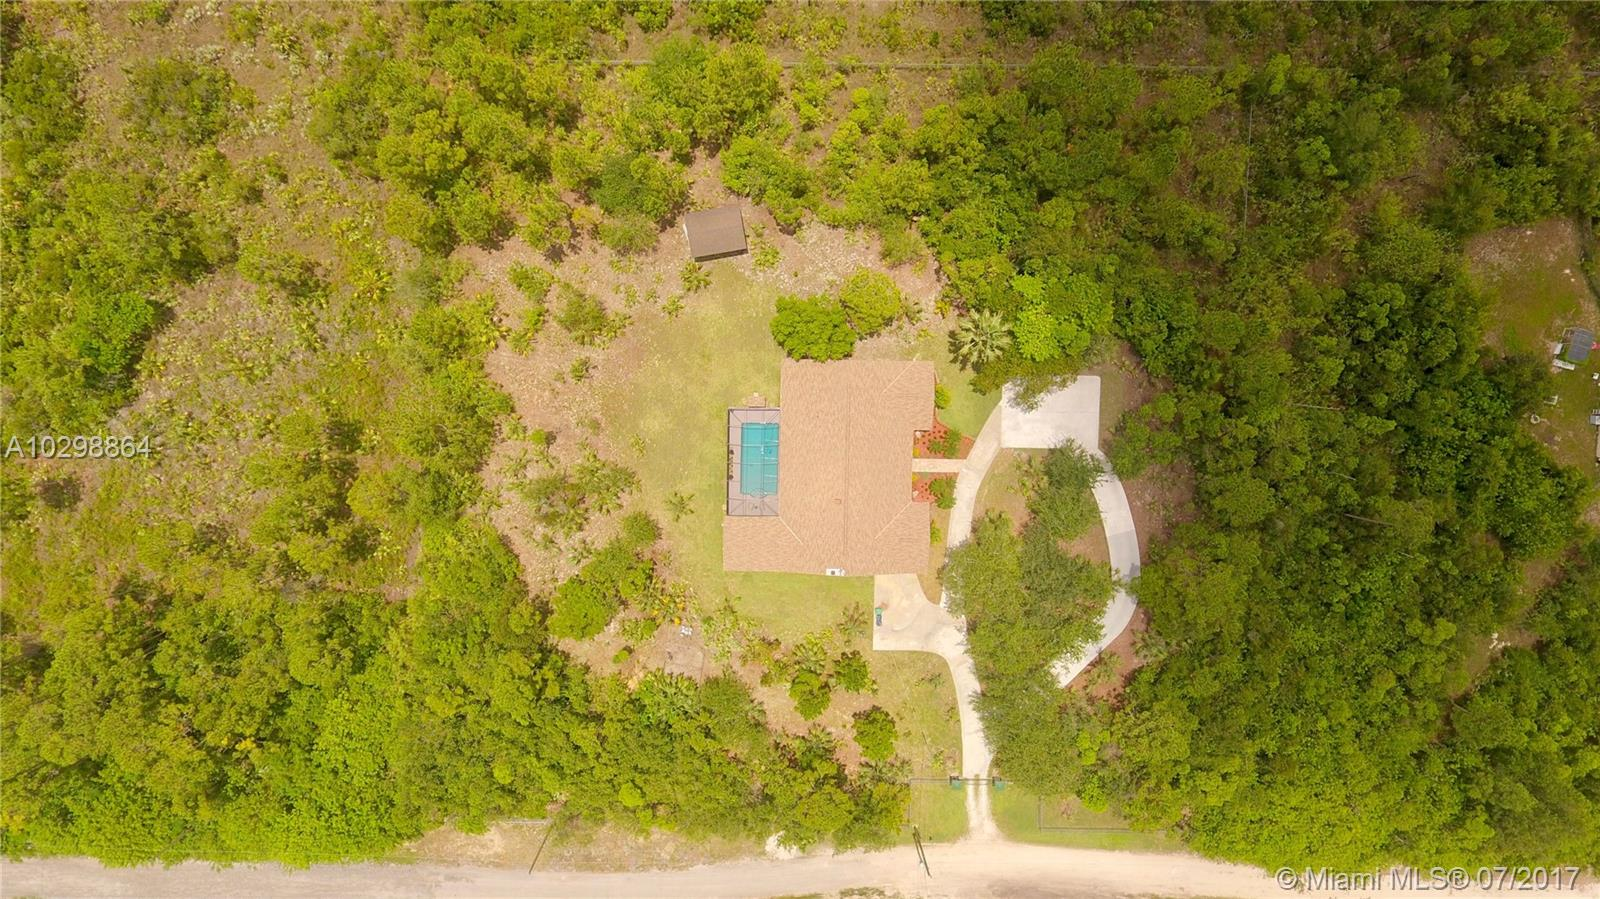 29820 Sw 205th Ave, Homestead FL, 33030